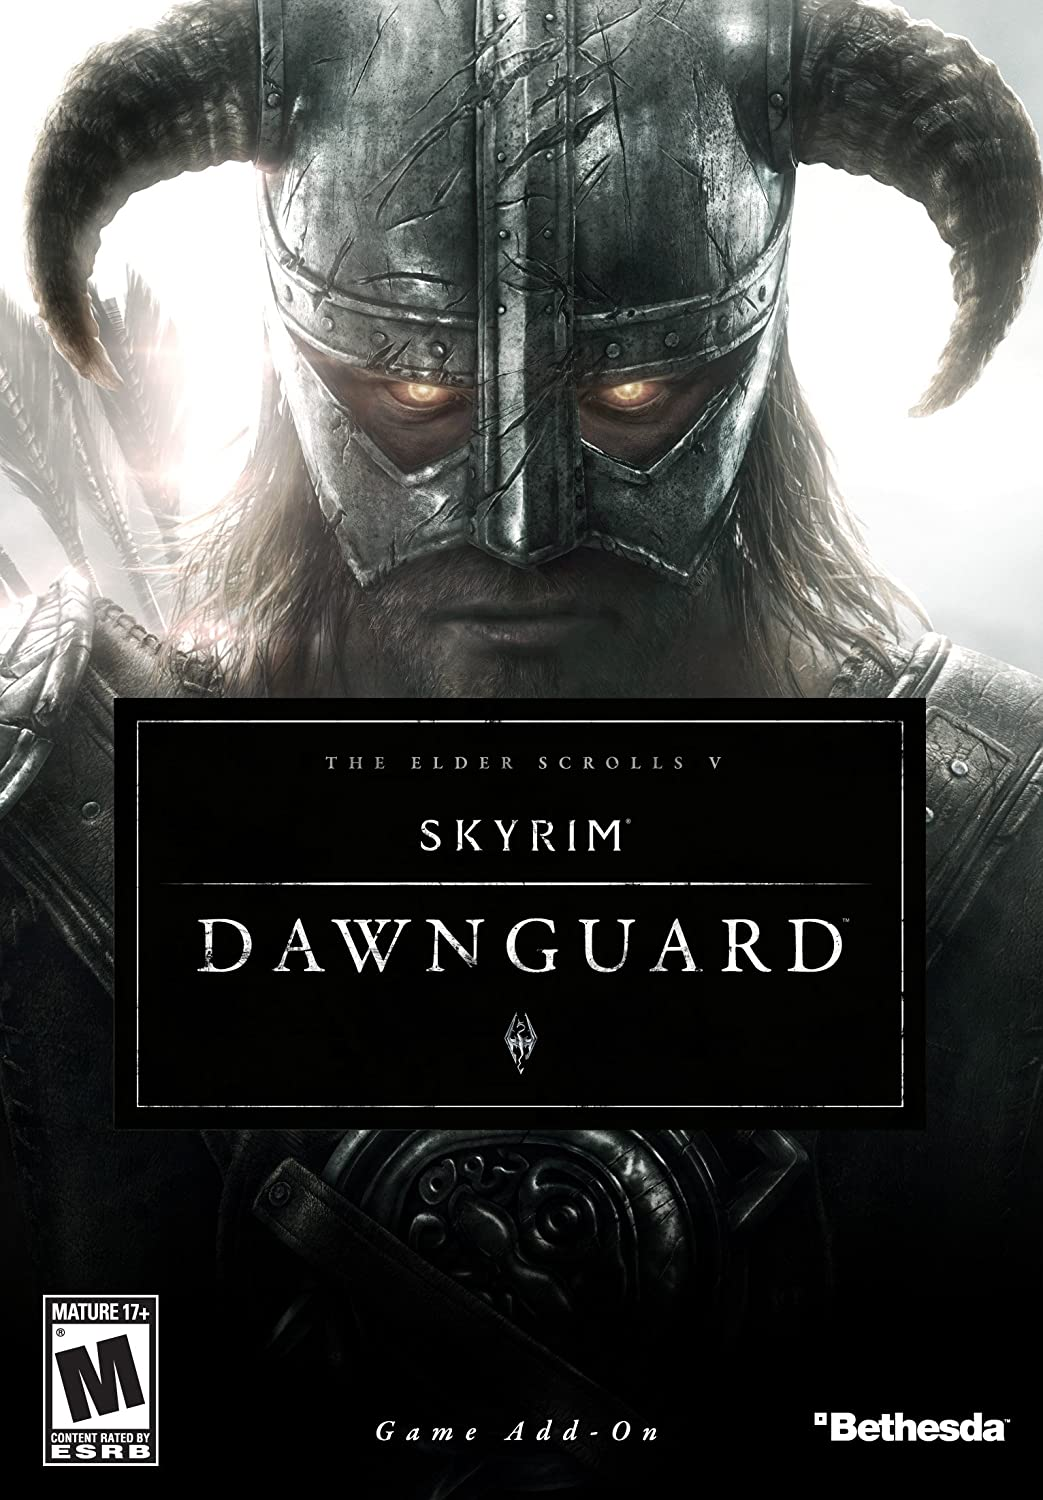 The Elder Scrolls V: Skyrim Code Game Dawnguard Online DLC: Challenge the lowest Bombing free shipping price